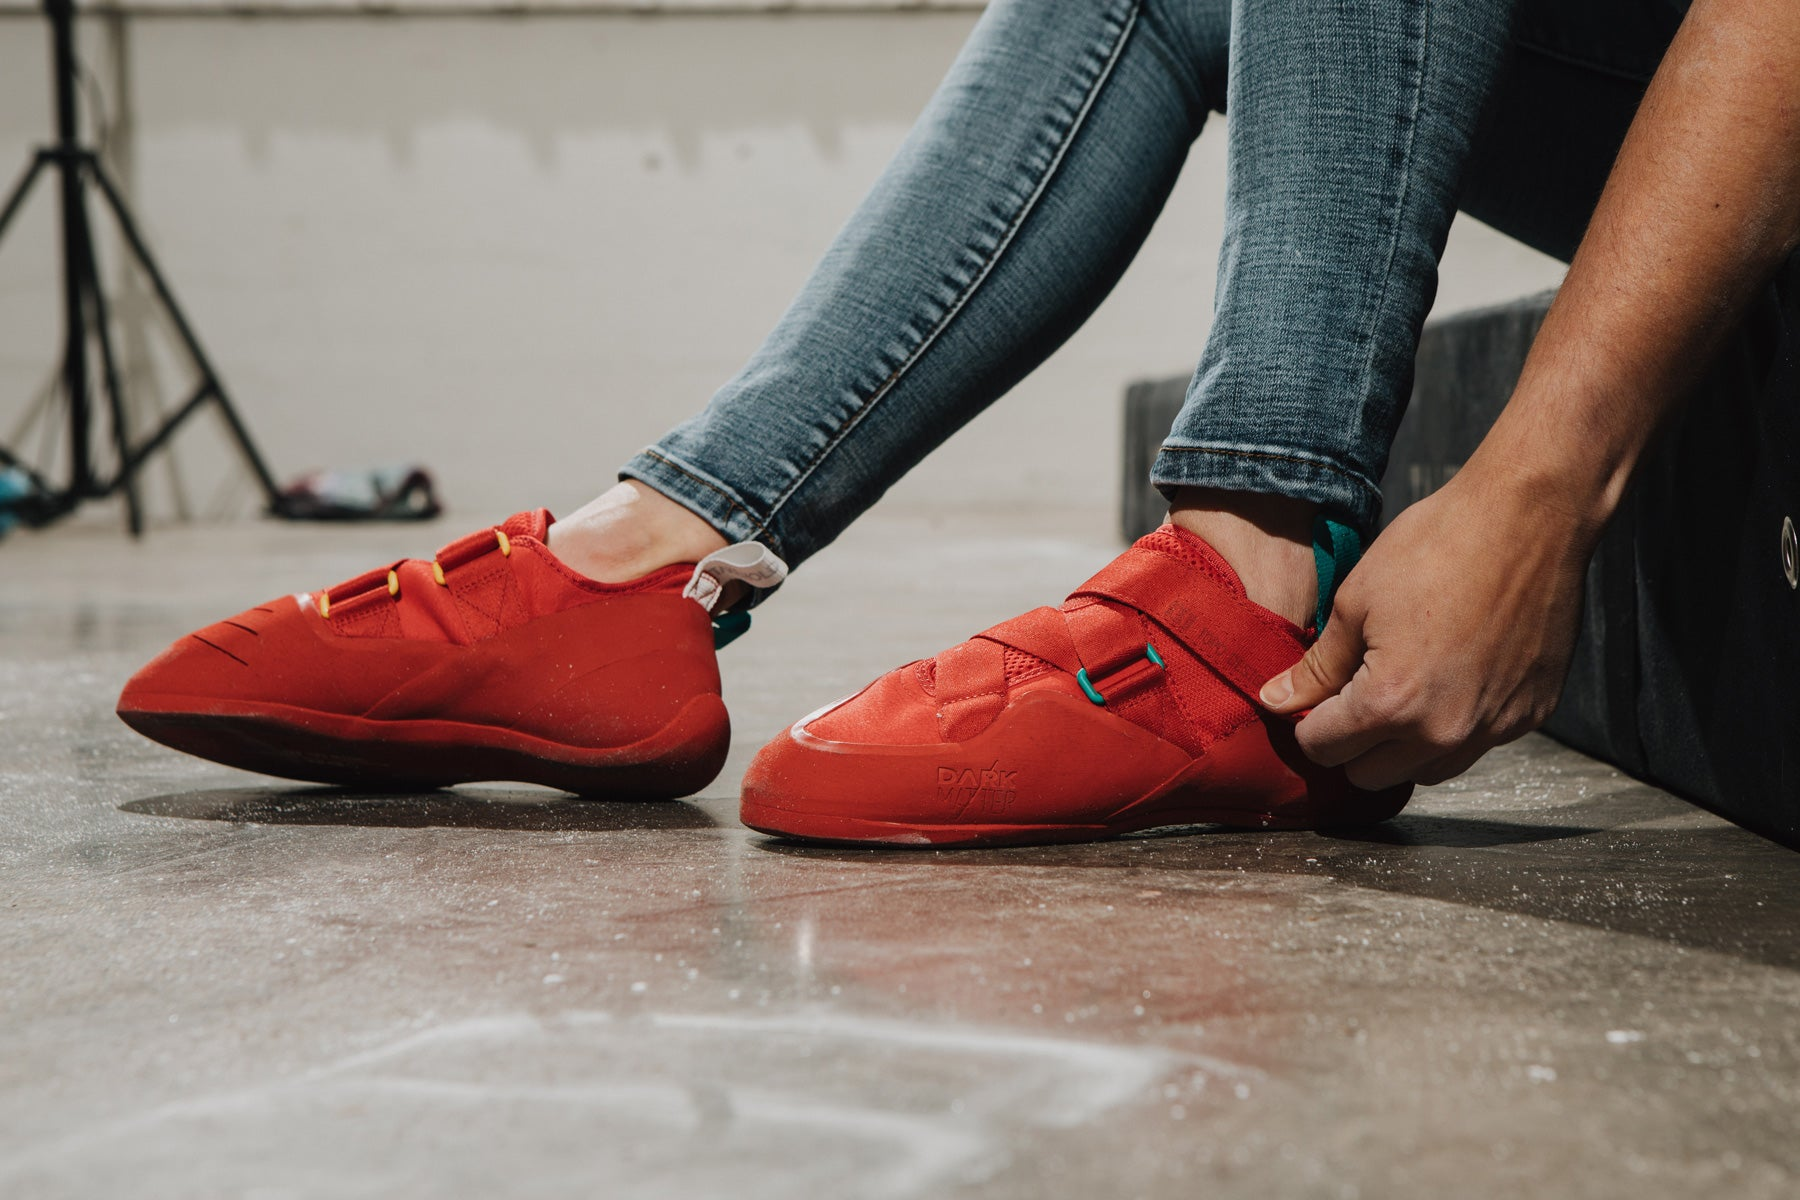 topo x so ill collaboration climbing shoes are worn at an indoor climbing wall